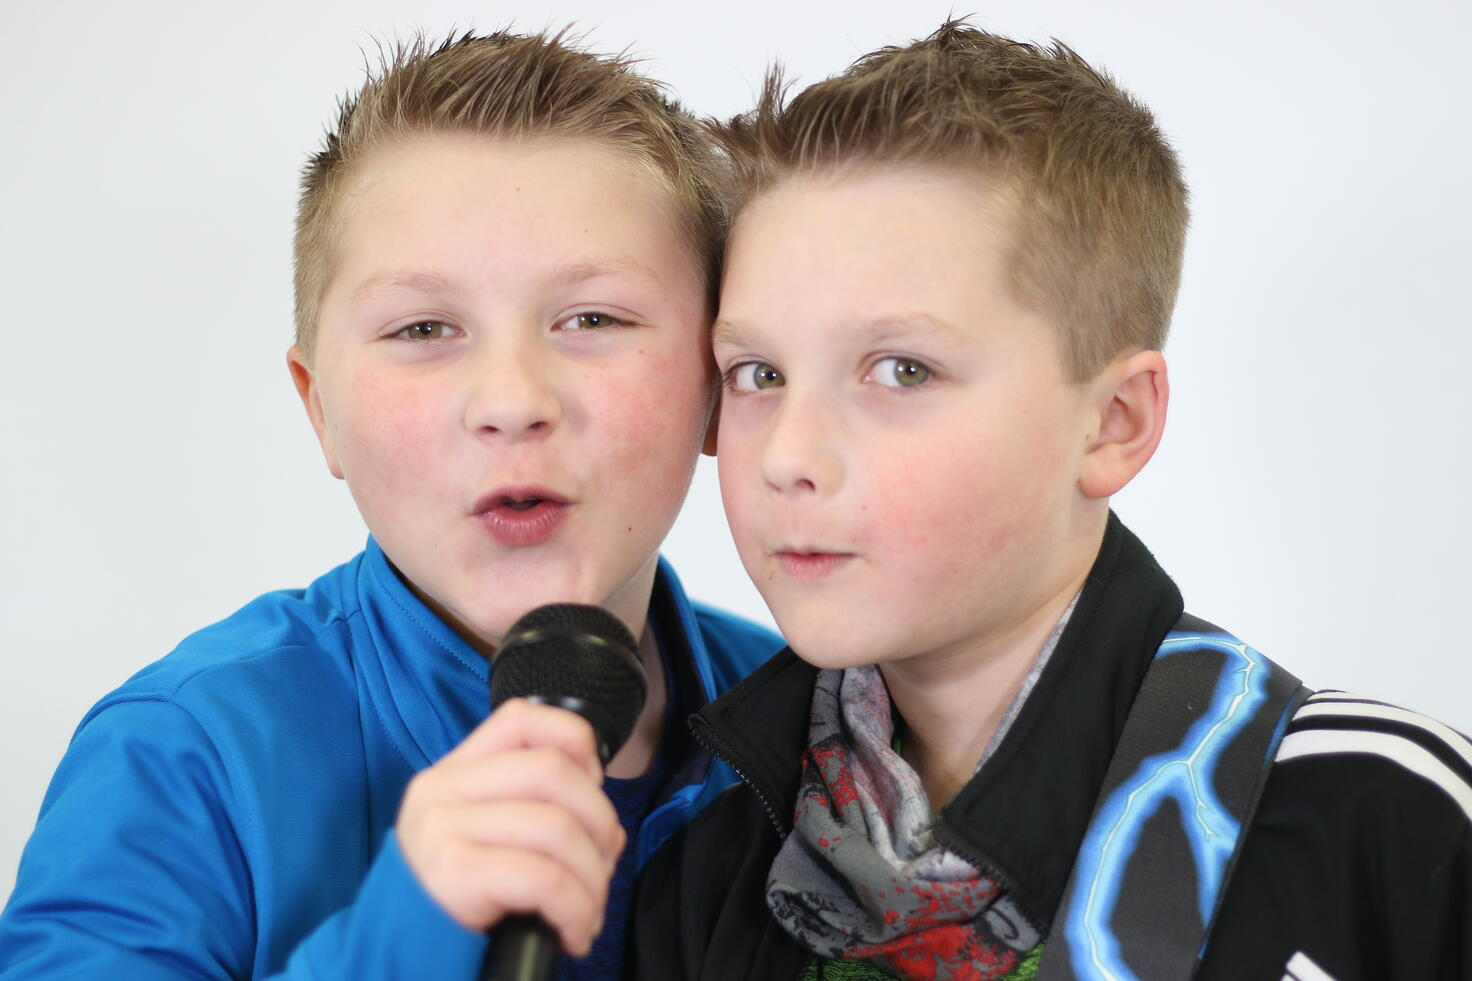 houston singing lesson boys